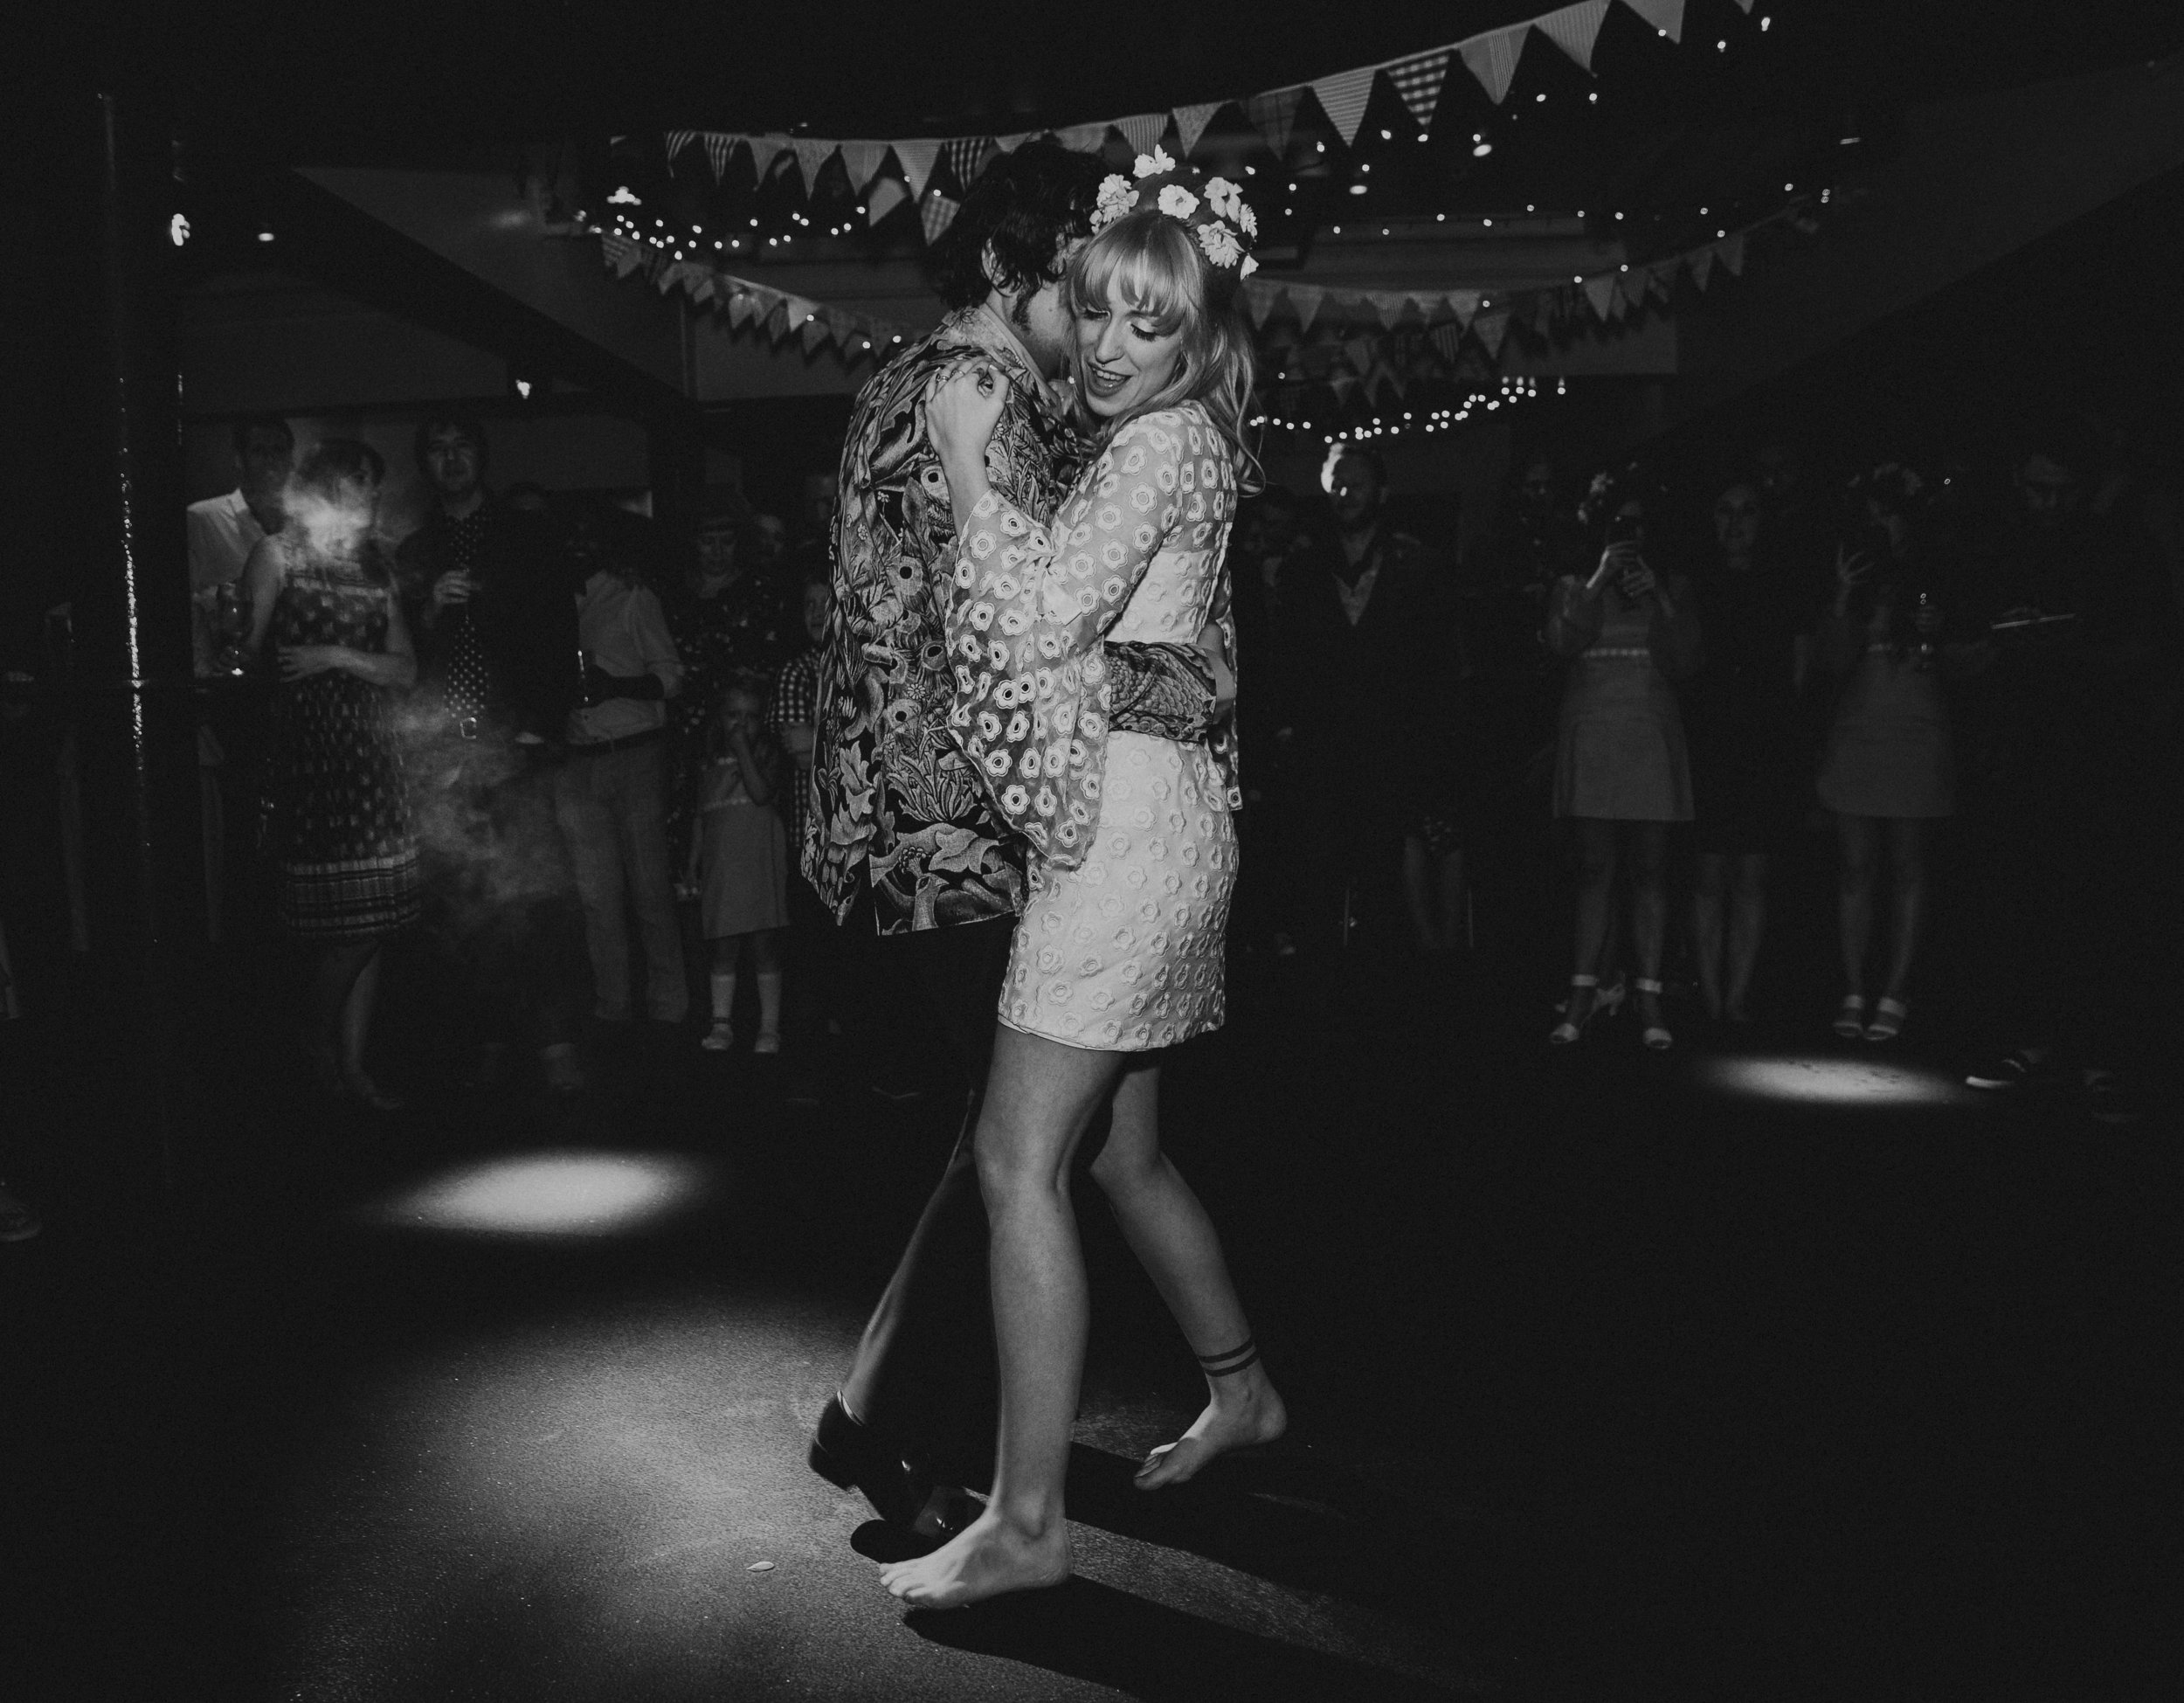 ALTERNATIVE_WEDDING_PHOTOGRAPHY_LEEDS_UK_PJ_PHILLIPS_PHOTOGRAPHY_153.jpg